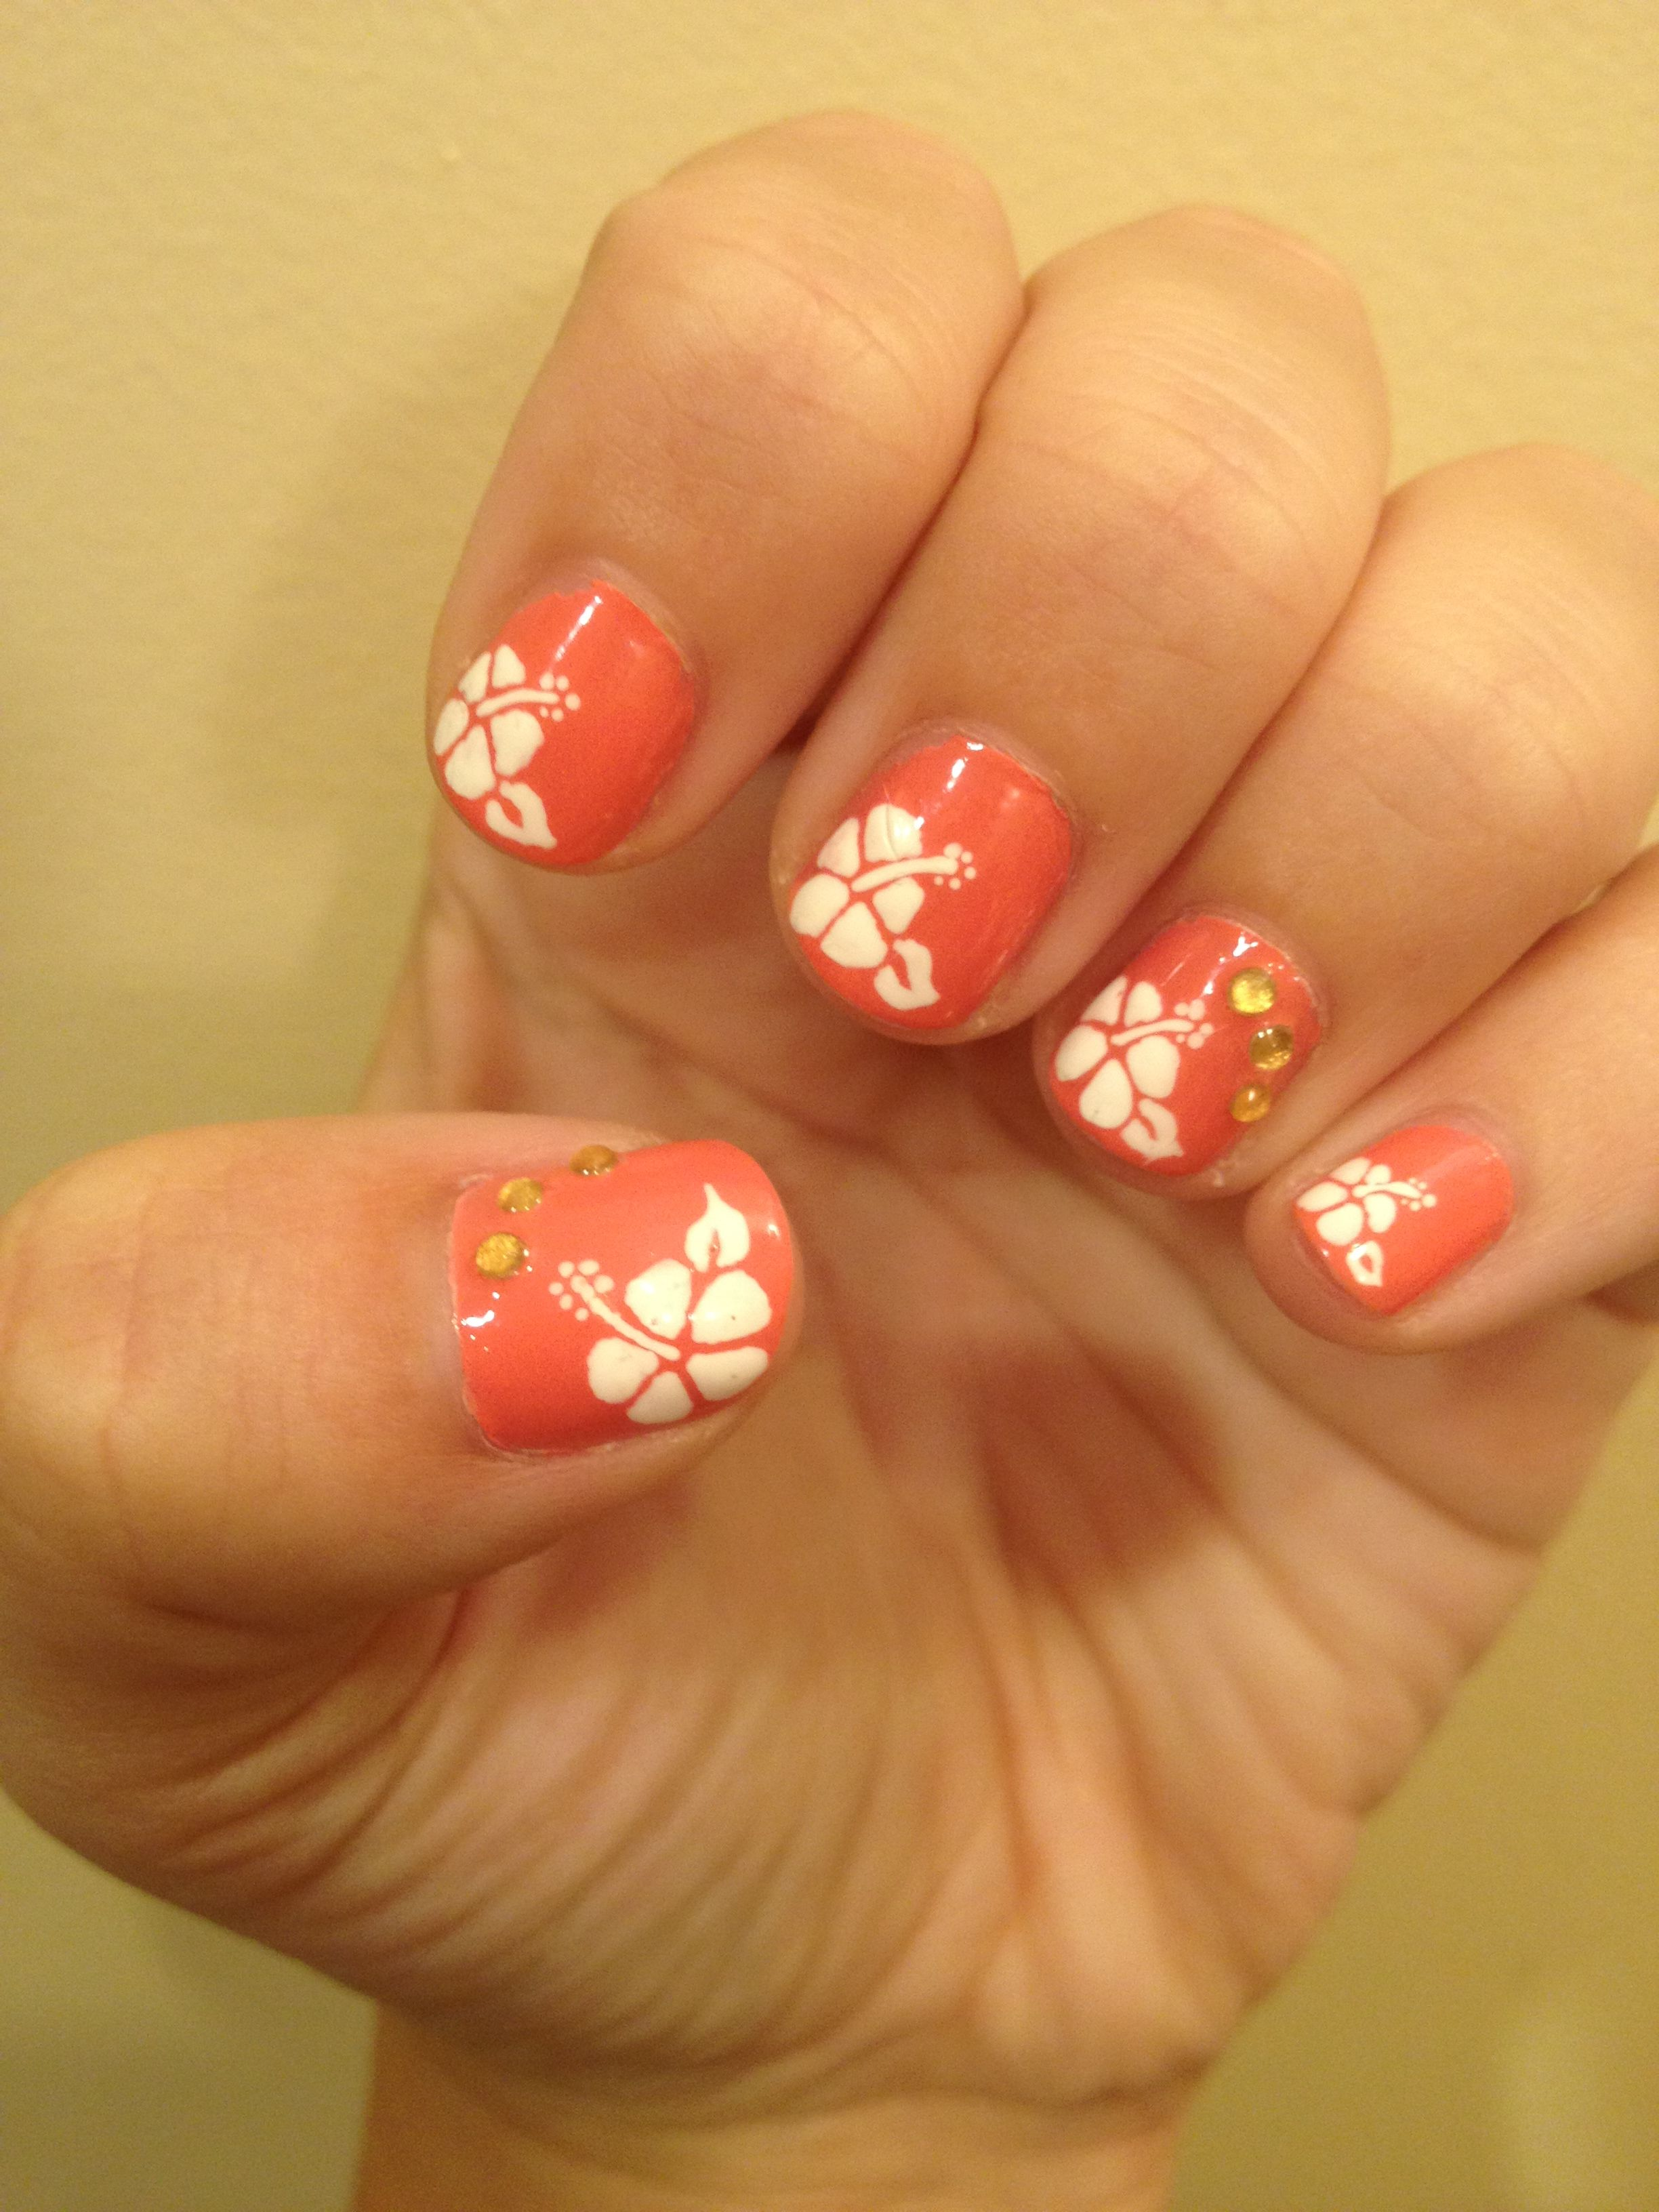 Hibiscus Nails For Hawaii Flower Nails Flower Nail Art Hawaiian Flower Nails